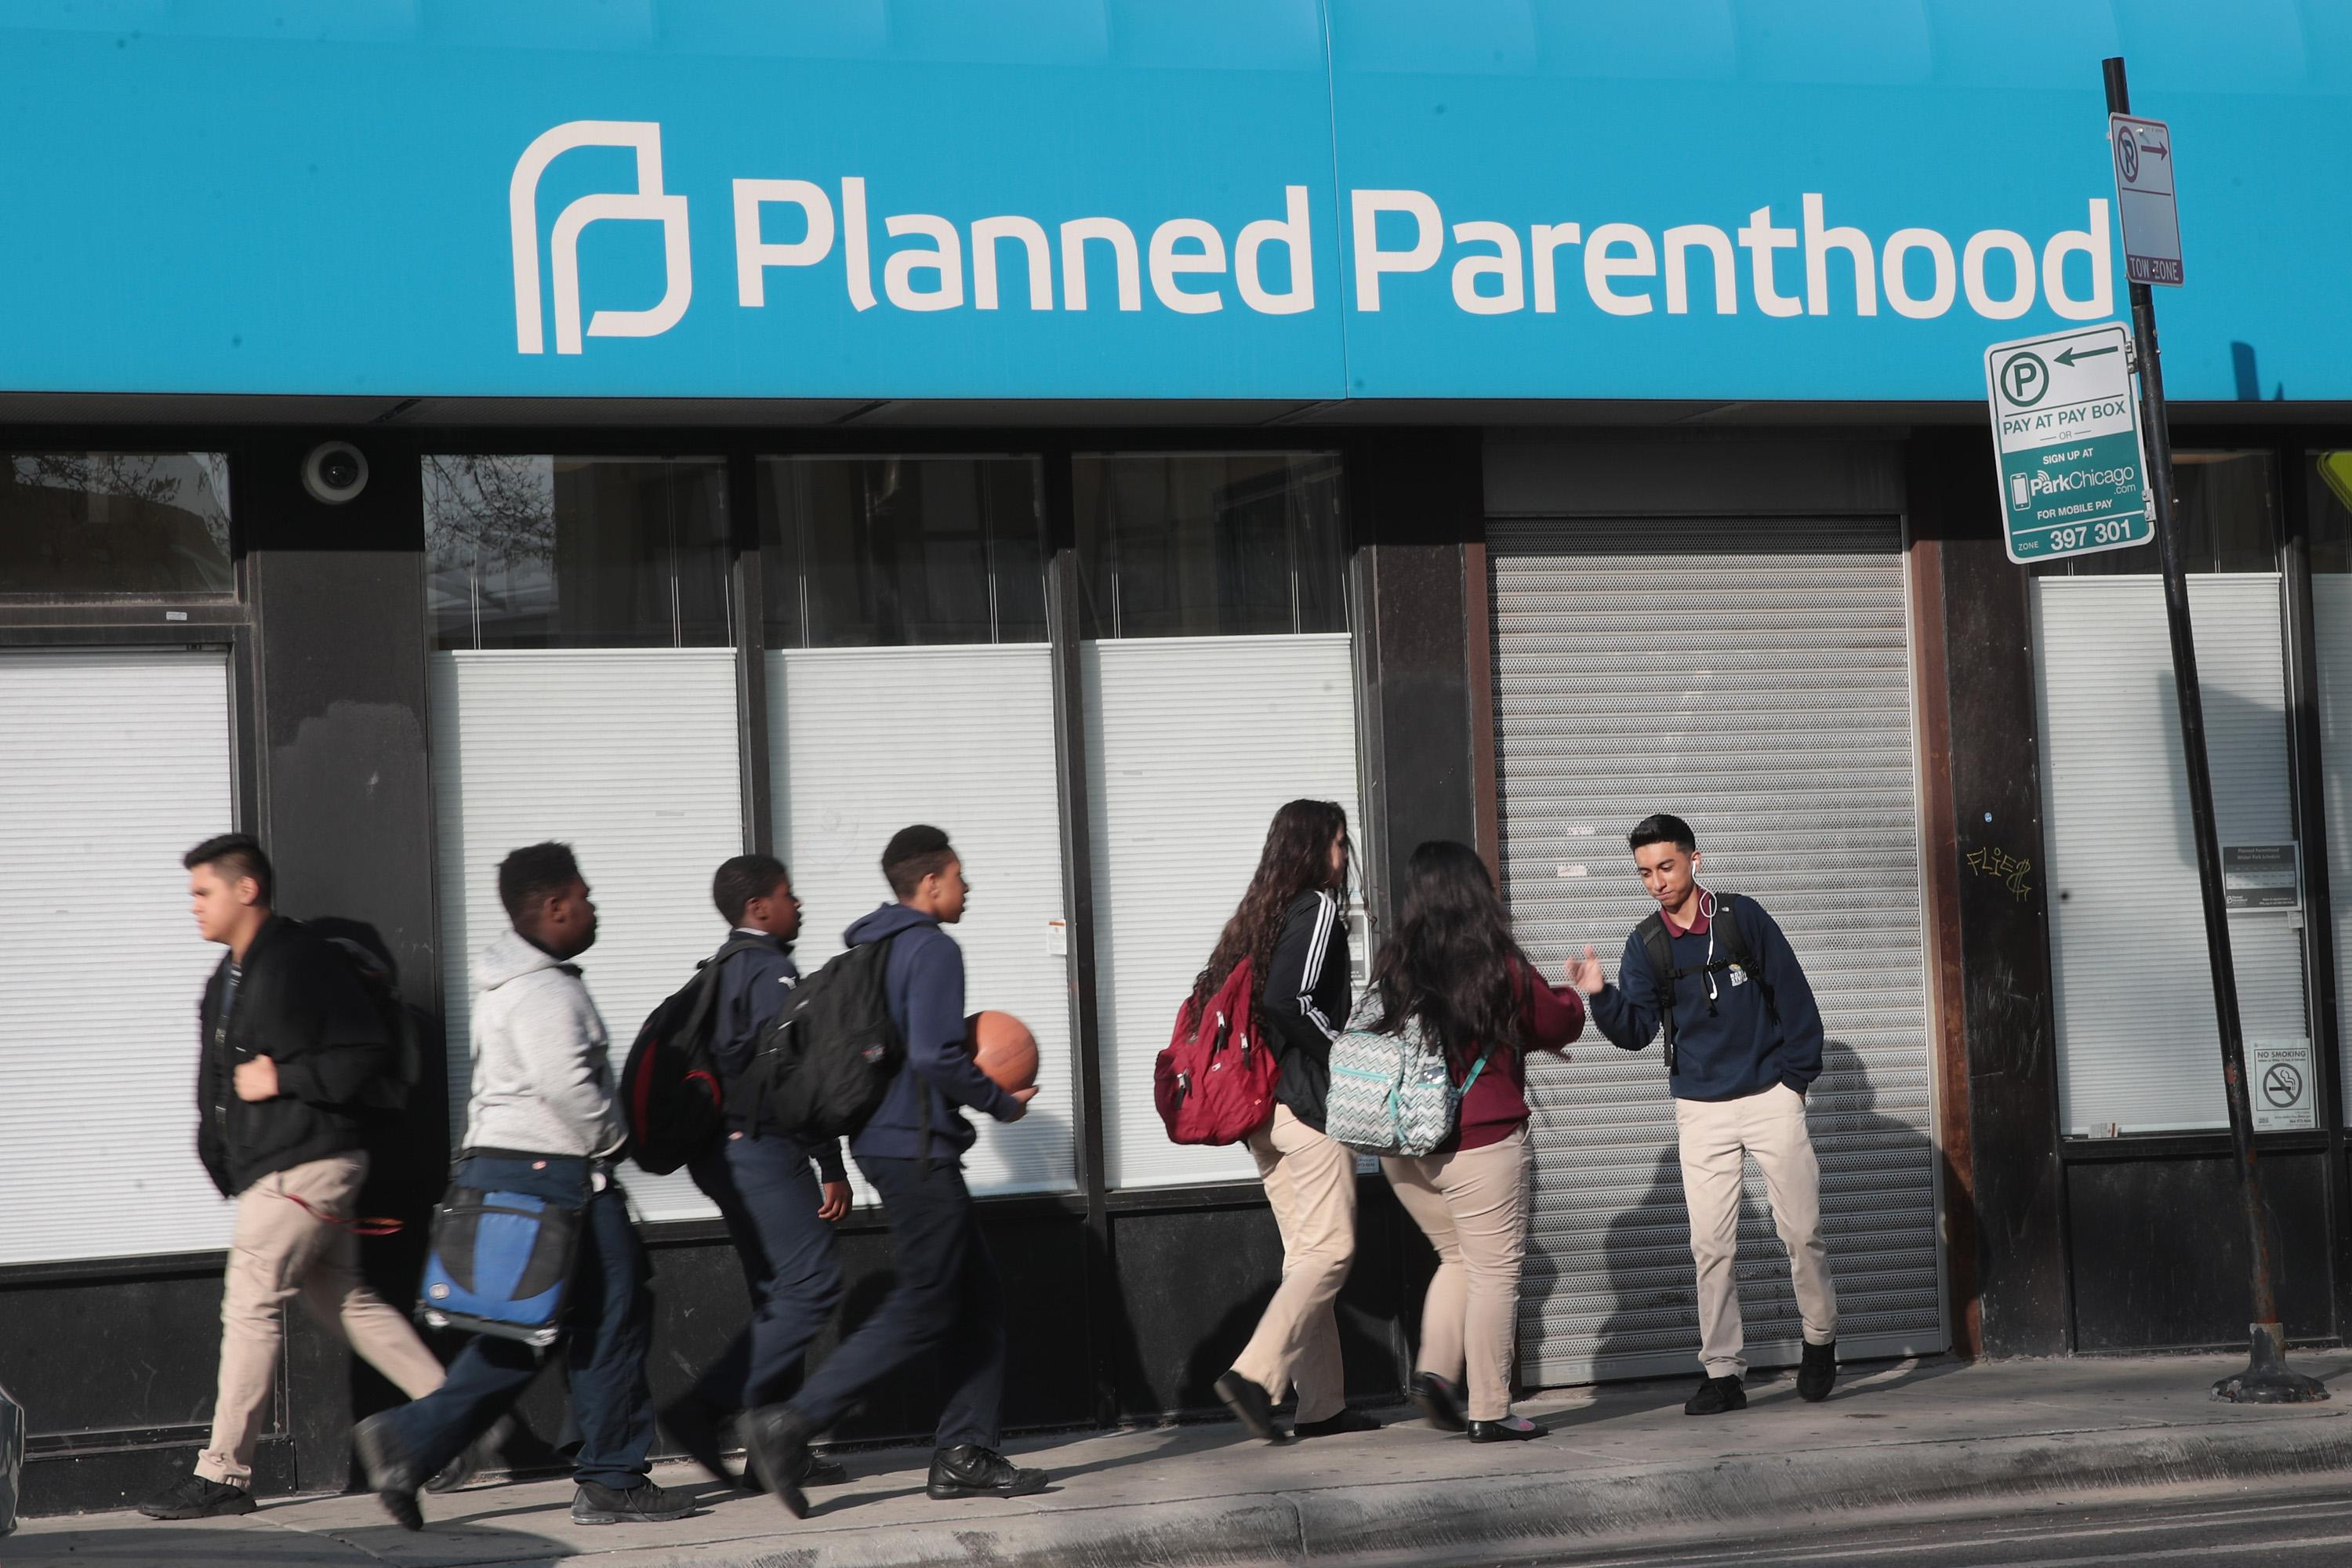 CHICAGO, IL - MAY 18:  Pedestrians walk past a Planned Parenthood clinic on May 18, 2018 in Chicago, Illinois. The Trump administration is expected to announce a plan for massive funding cuts to Planned Parenthood and other taxpayer-backed abortion providers by reinstating a Reagan-era rule that prohibits federal funding from going to clinics that discuss abortion with women or that share space with abortion providers.  (Photo by Scott Olson/Getty Images)